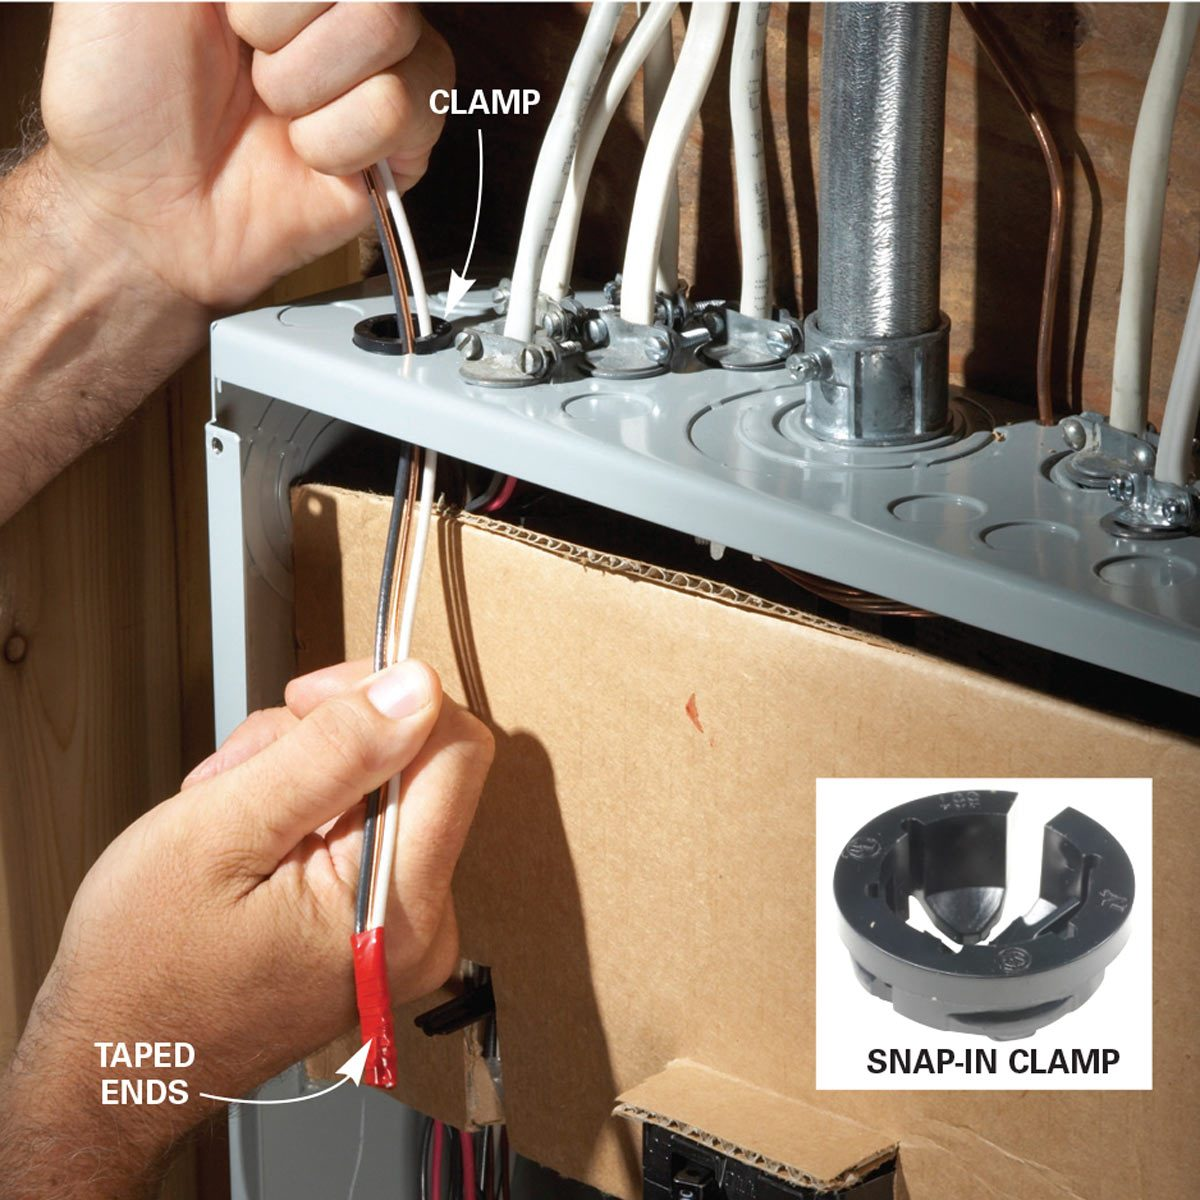 Breaker Box Safety: How to Connect a New Circuit | Family HandymanThe Family Handyman